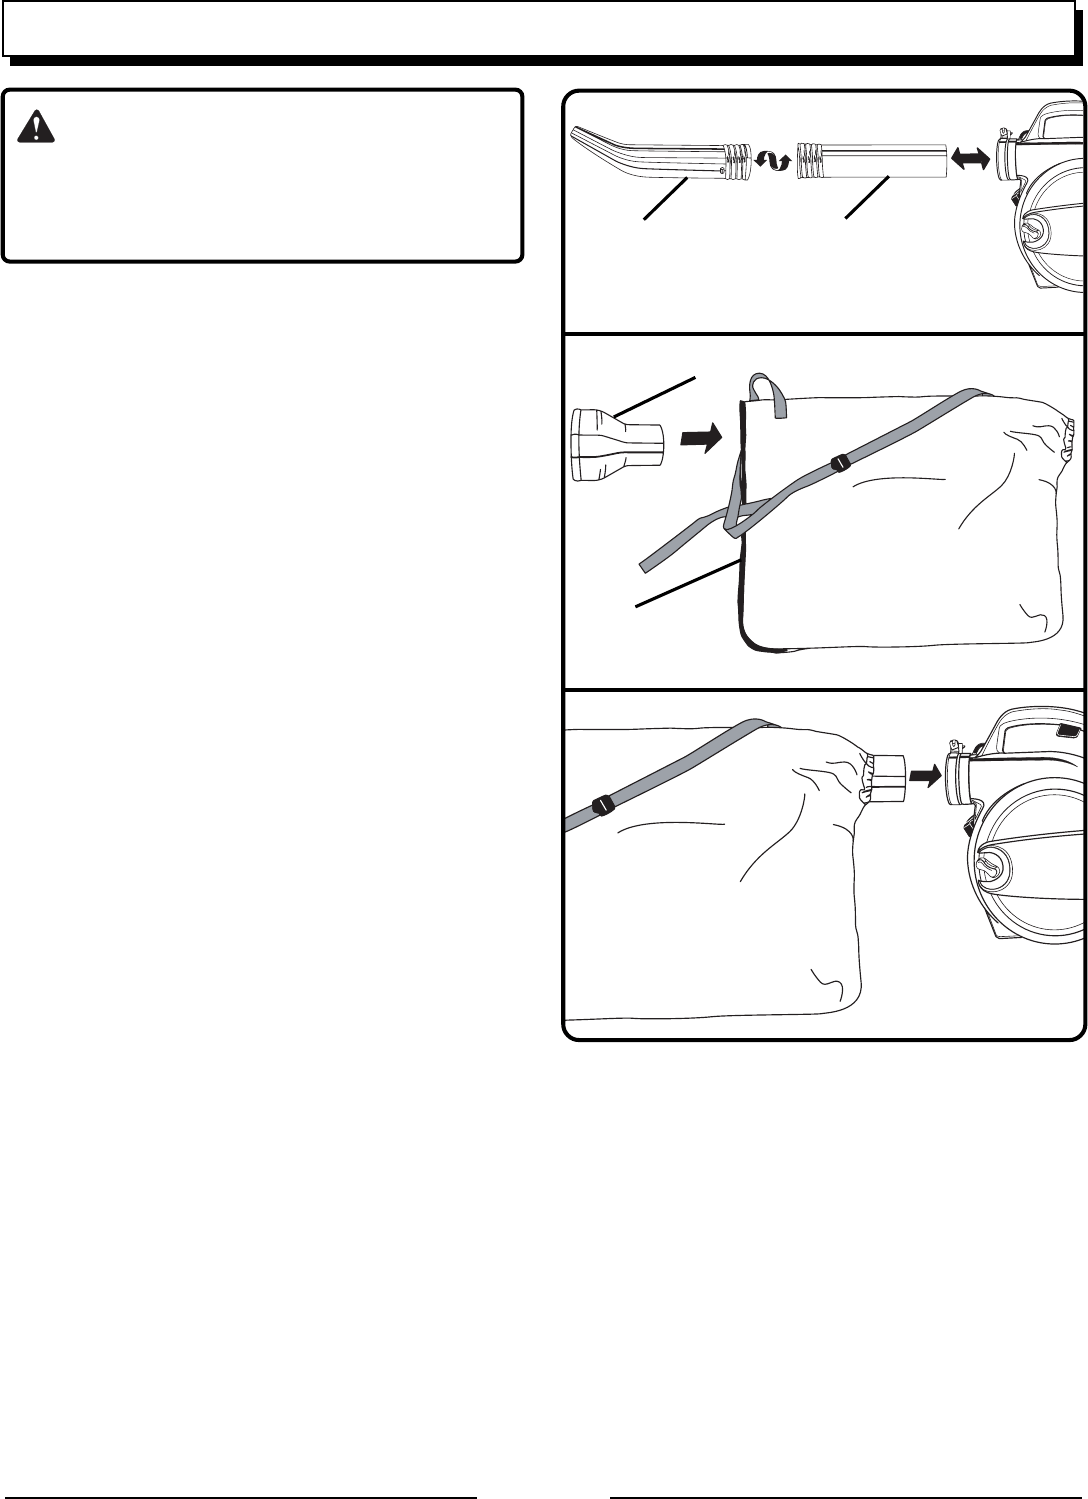 Page 9 of Homelite Blower ZR08107 User Guide